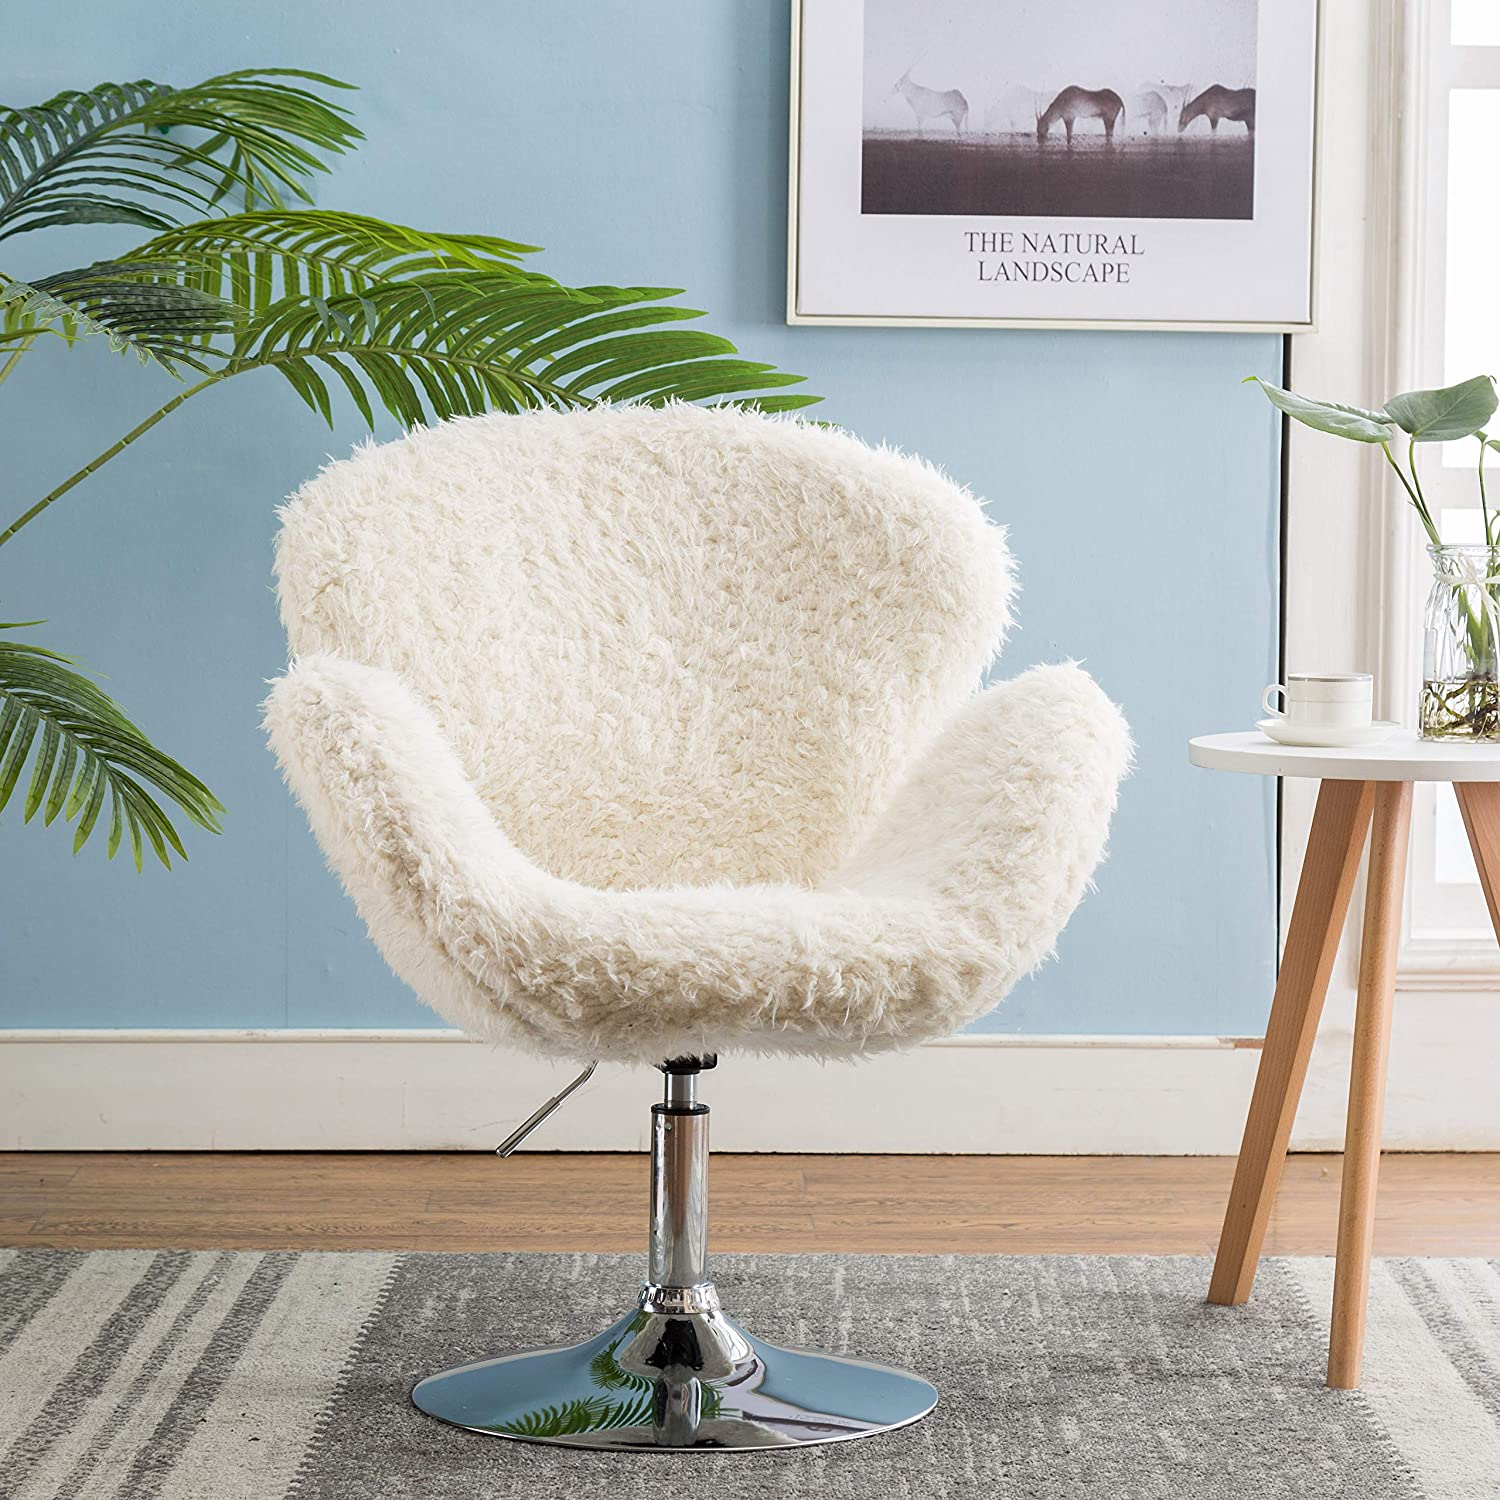 Faux Fur Swivel Makeup Stool, Modern White Swan Chair Curly Hair Fluffy Fuzzy Accent Chair with Armrest